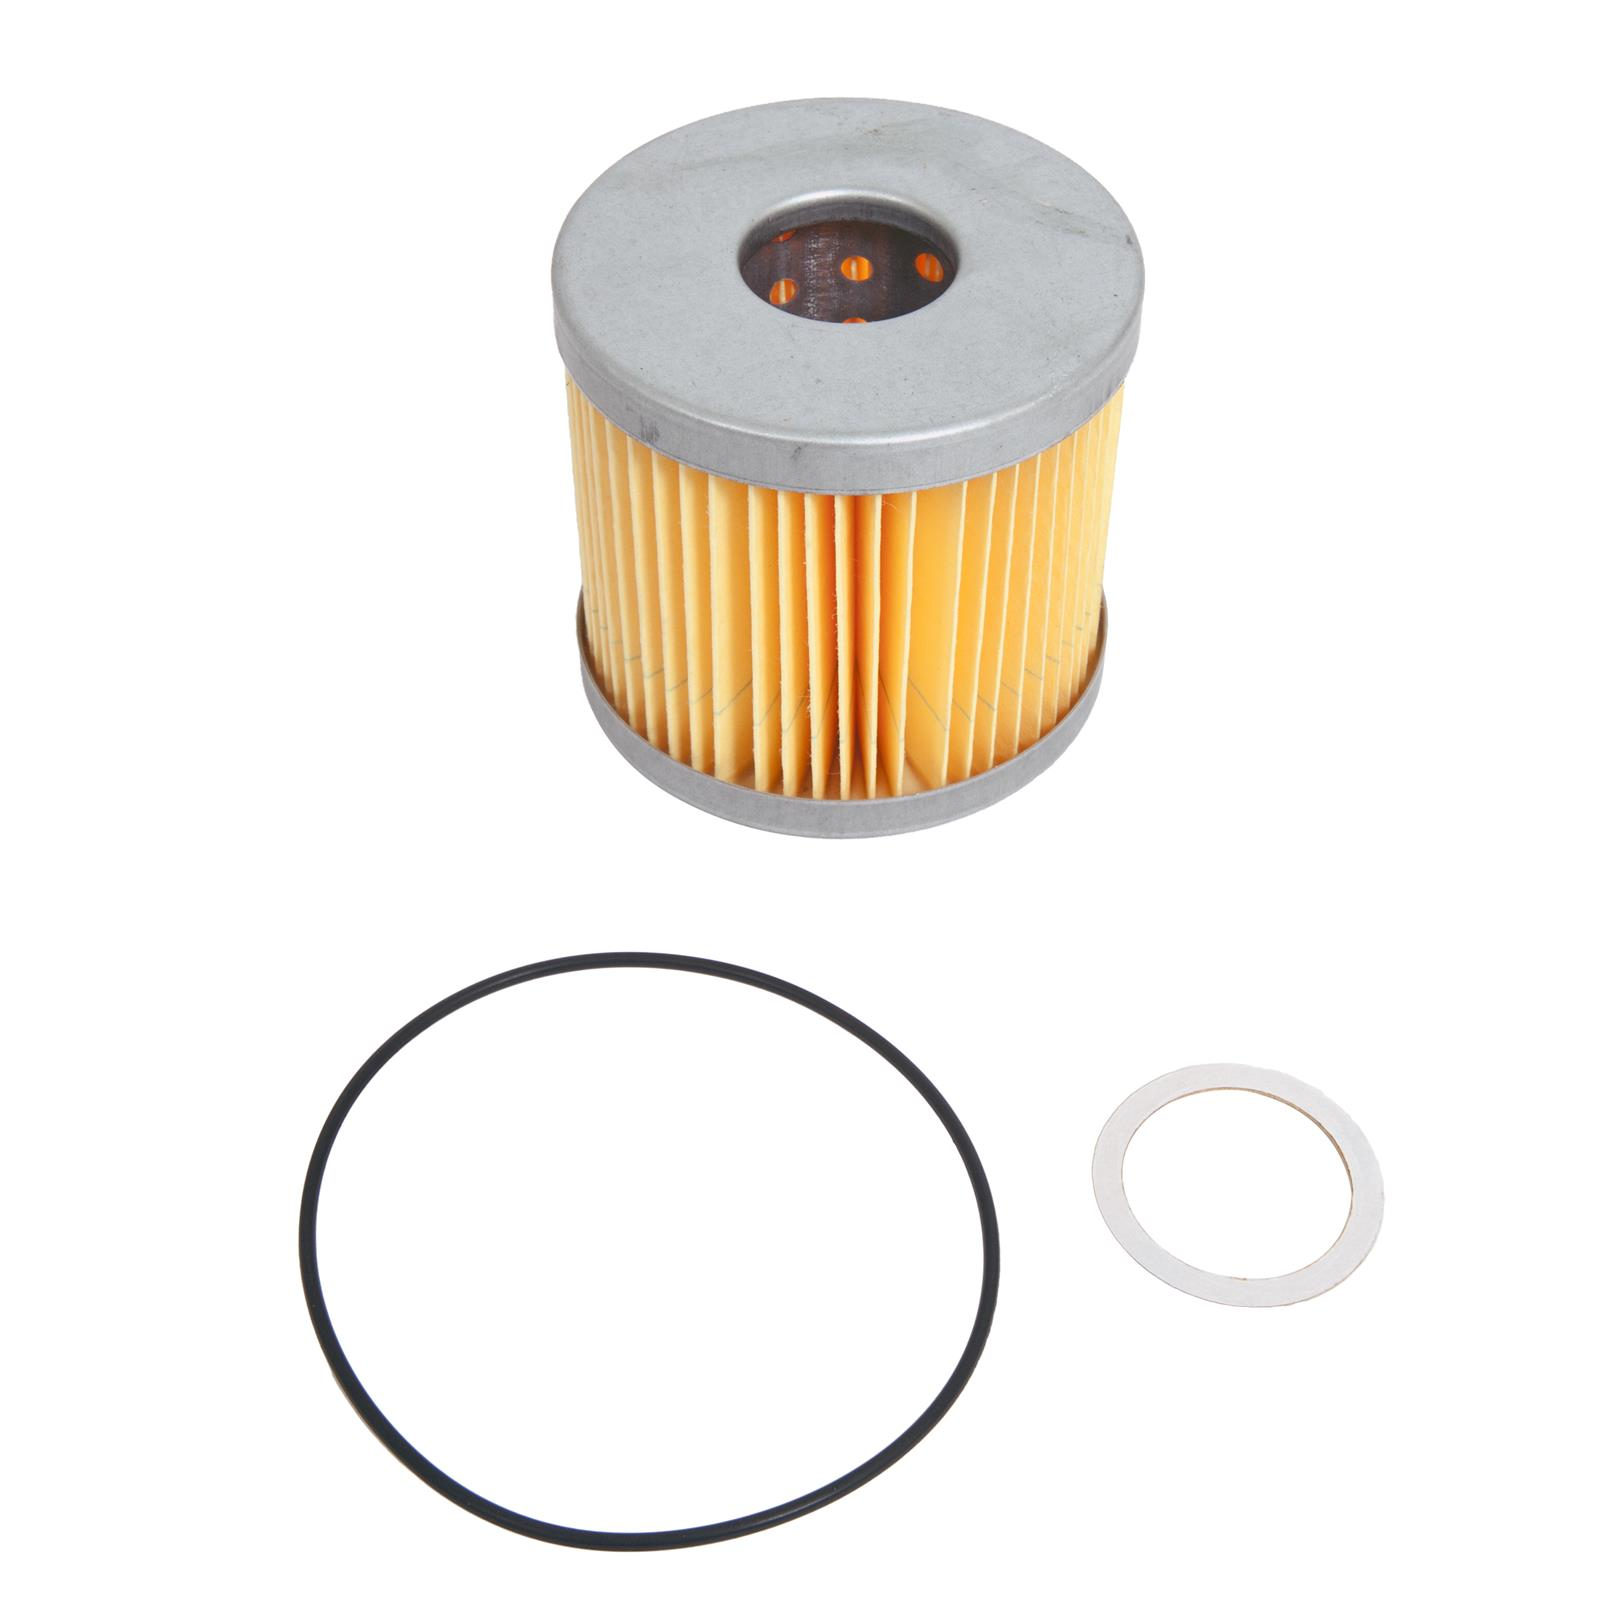 Mallory Replacement Fuel Filter Elements 29238 - Free Shipping on Orders  Over $49 at Summit Racing